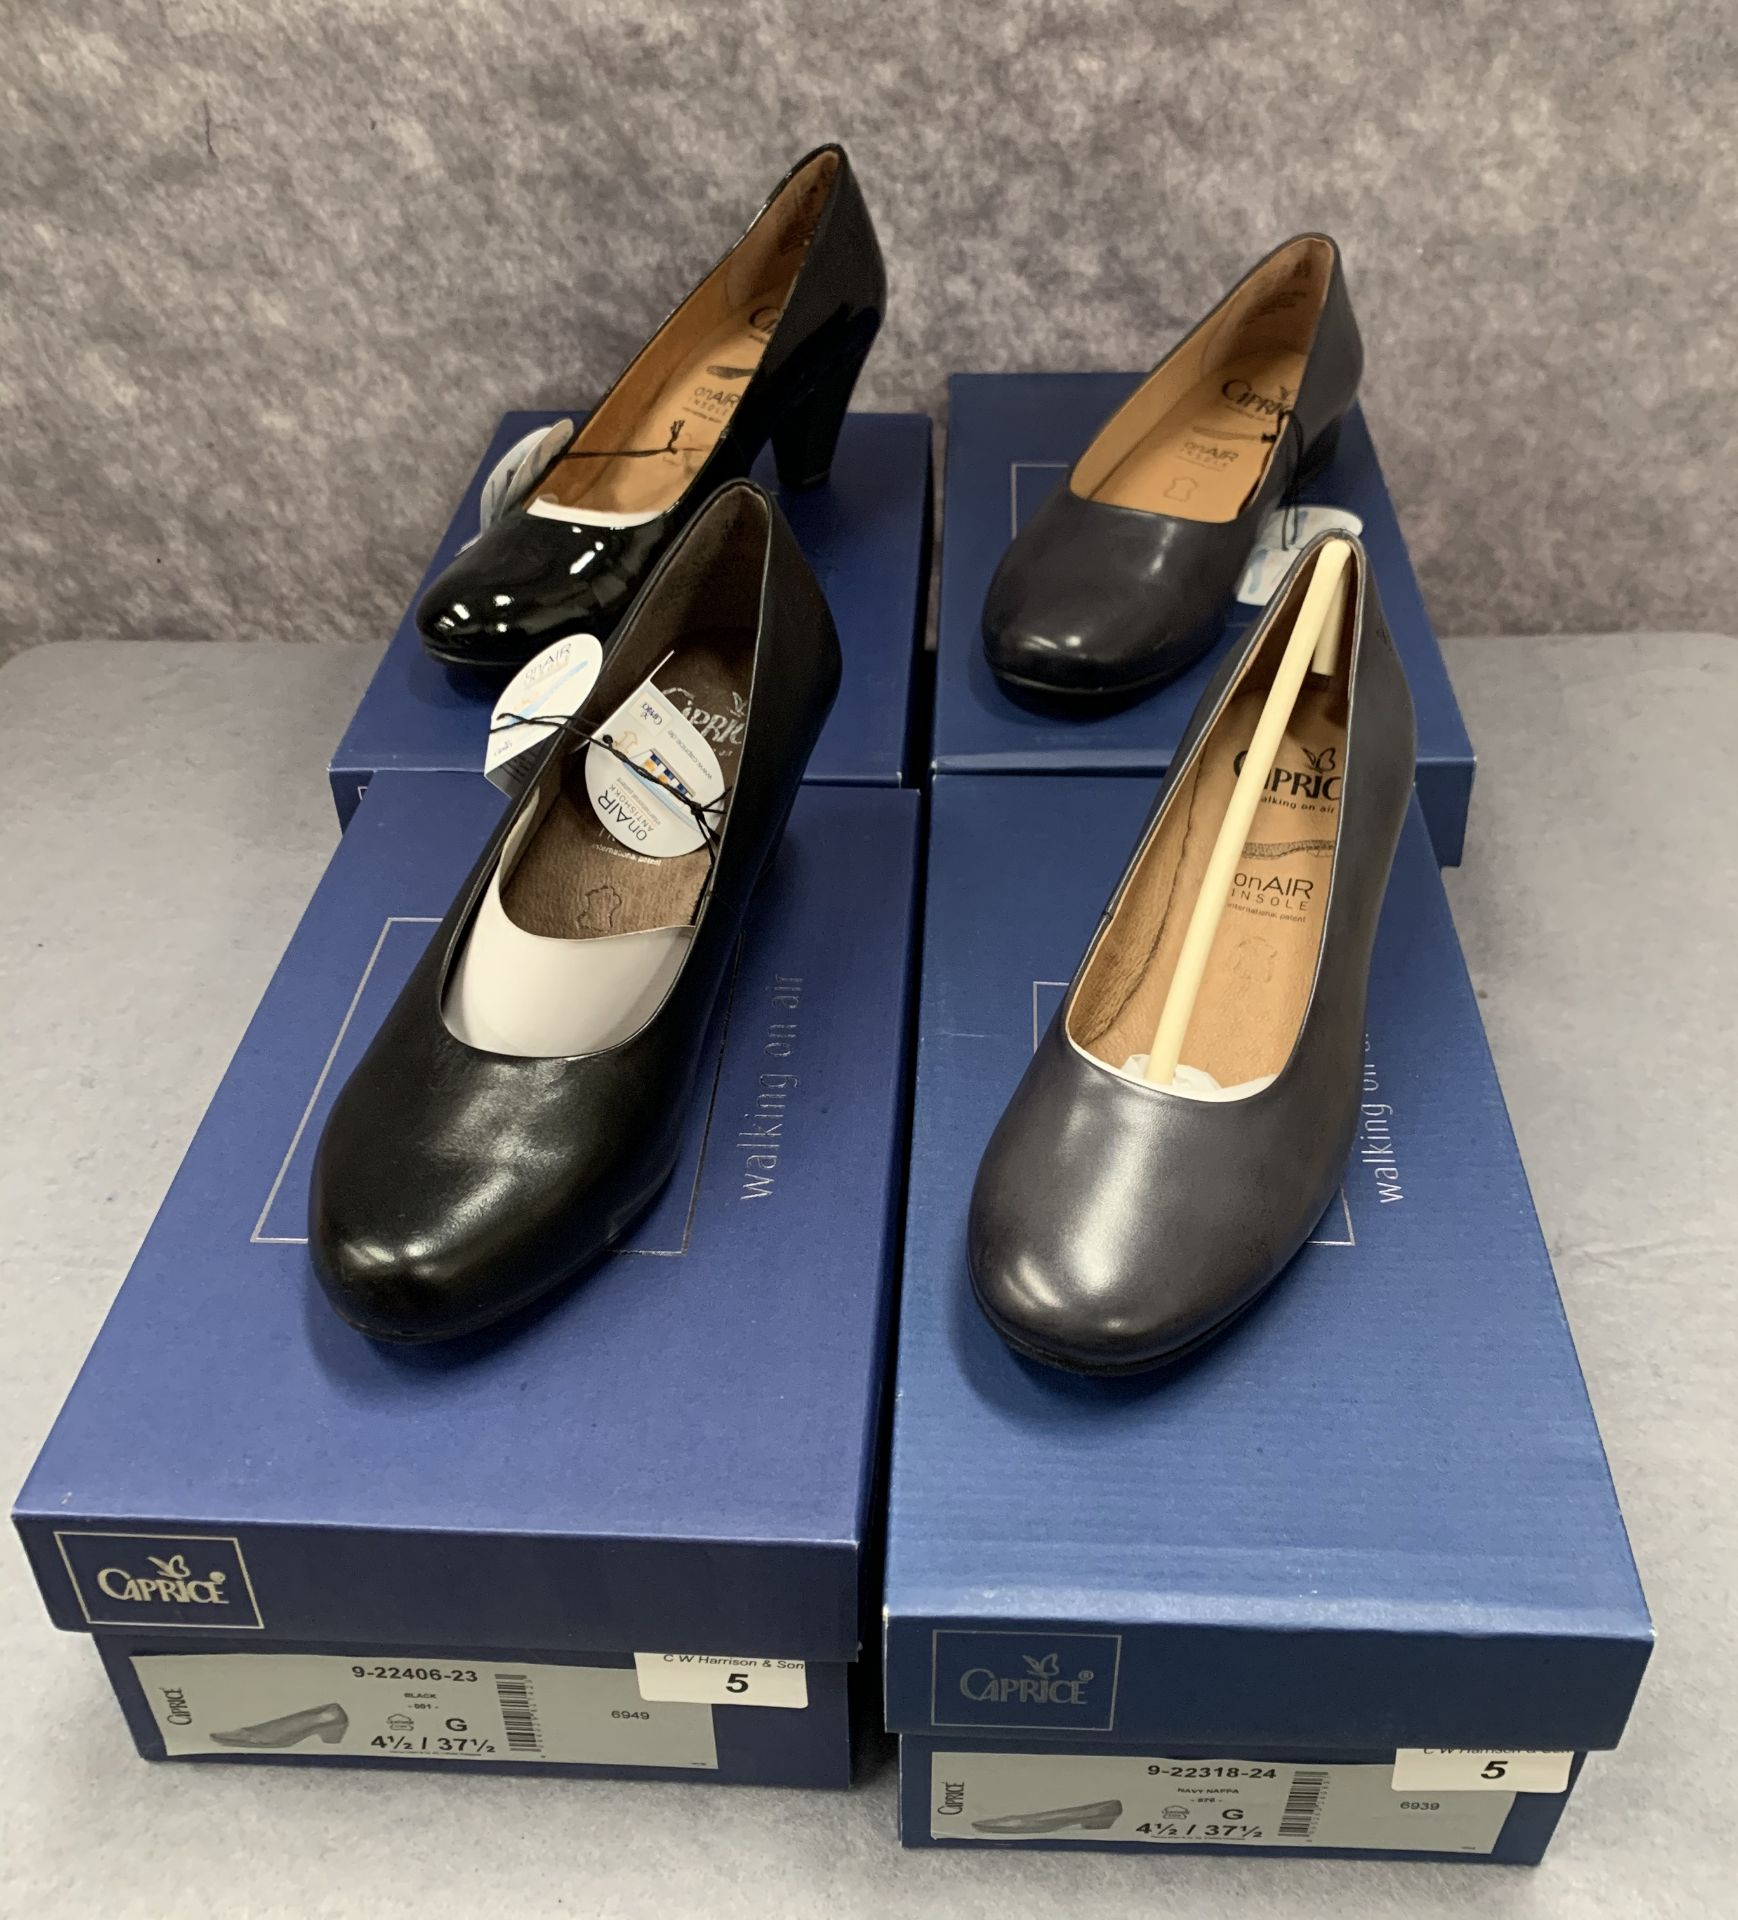 Lot 5 - Four pairs of Caprice ladies shoes in navy and black, various styles, size 4½, retail price £59.